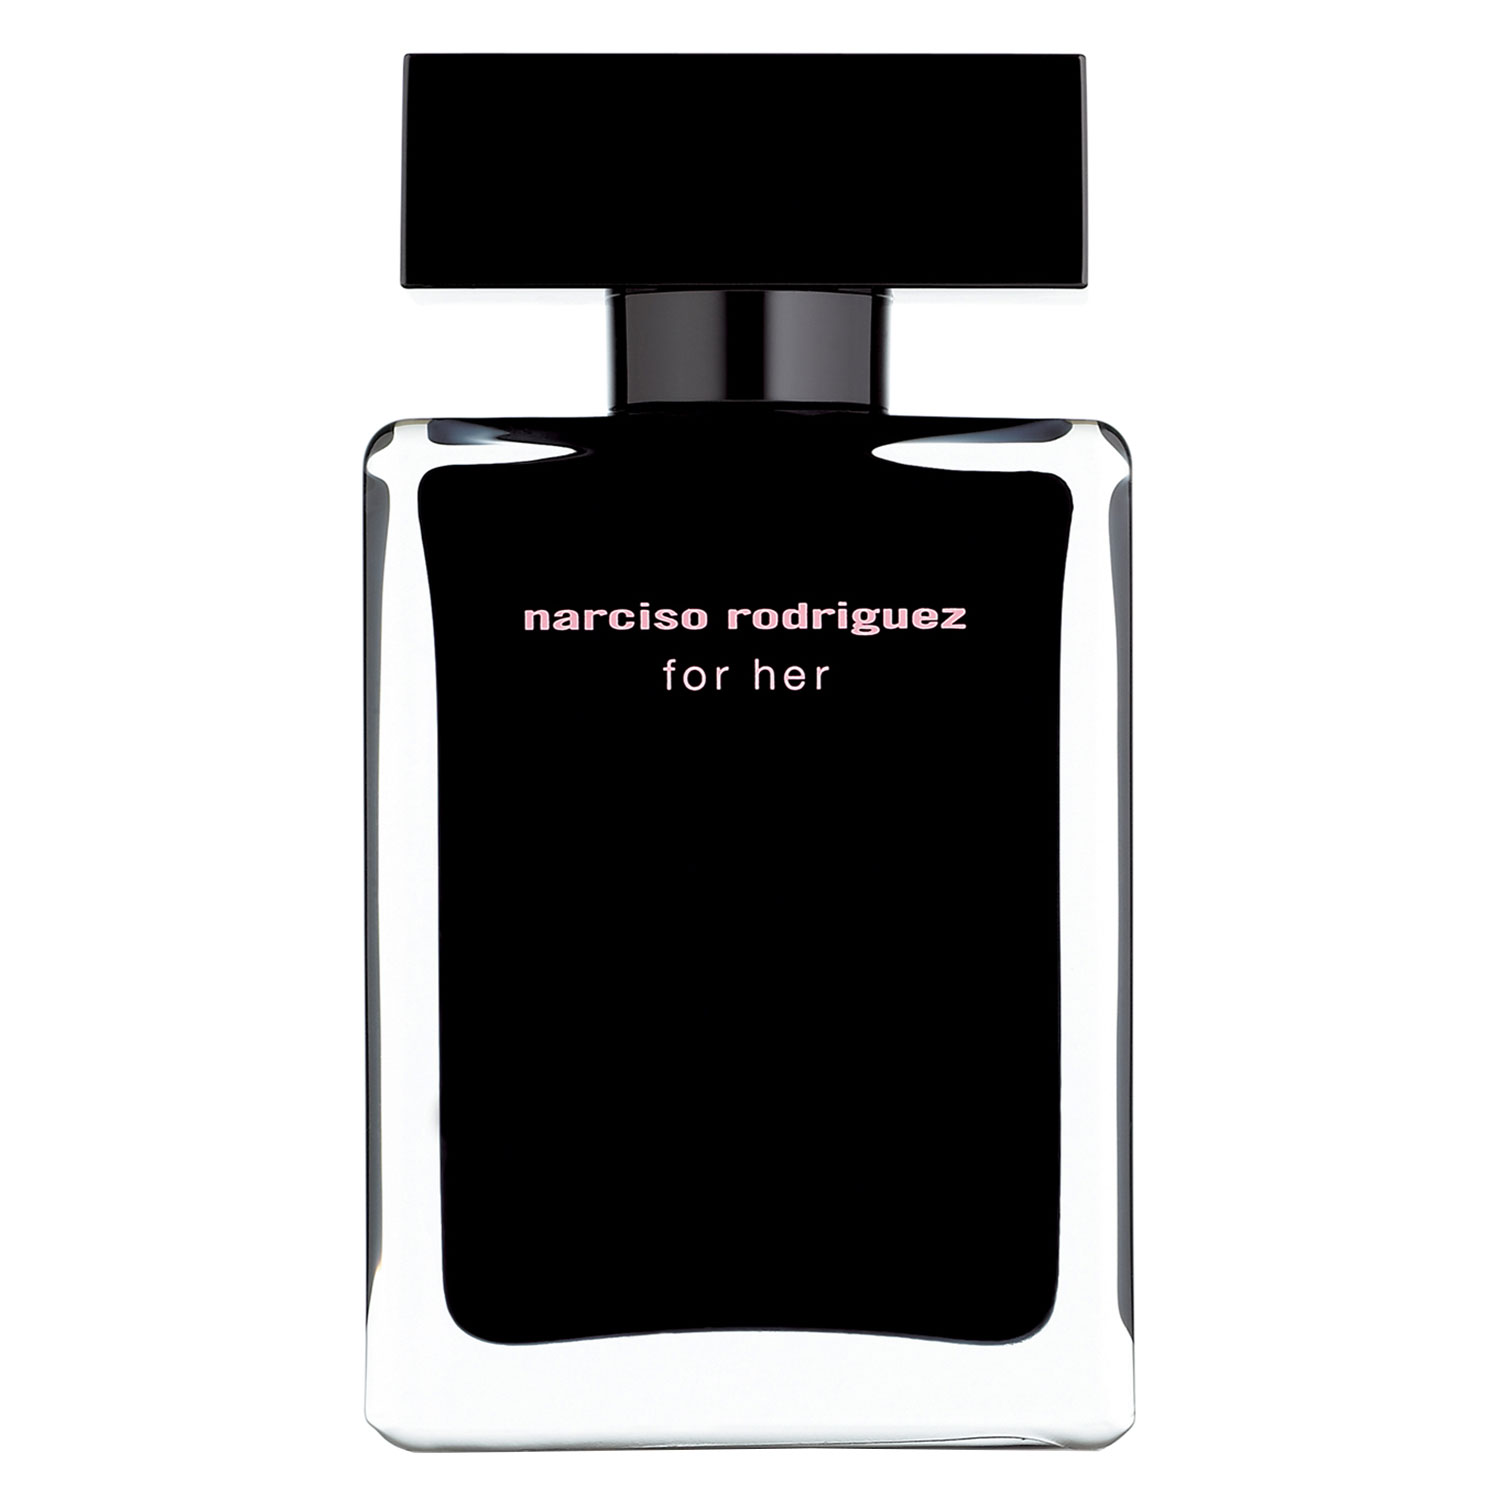 Narciso - For Her Eau de Toilette